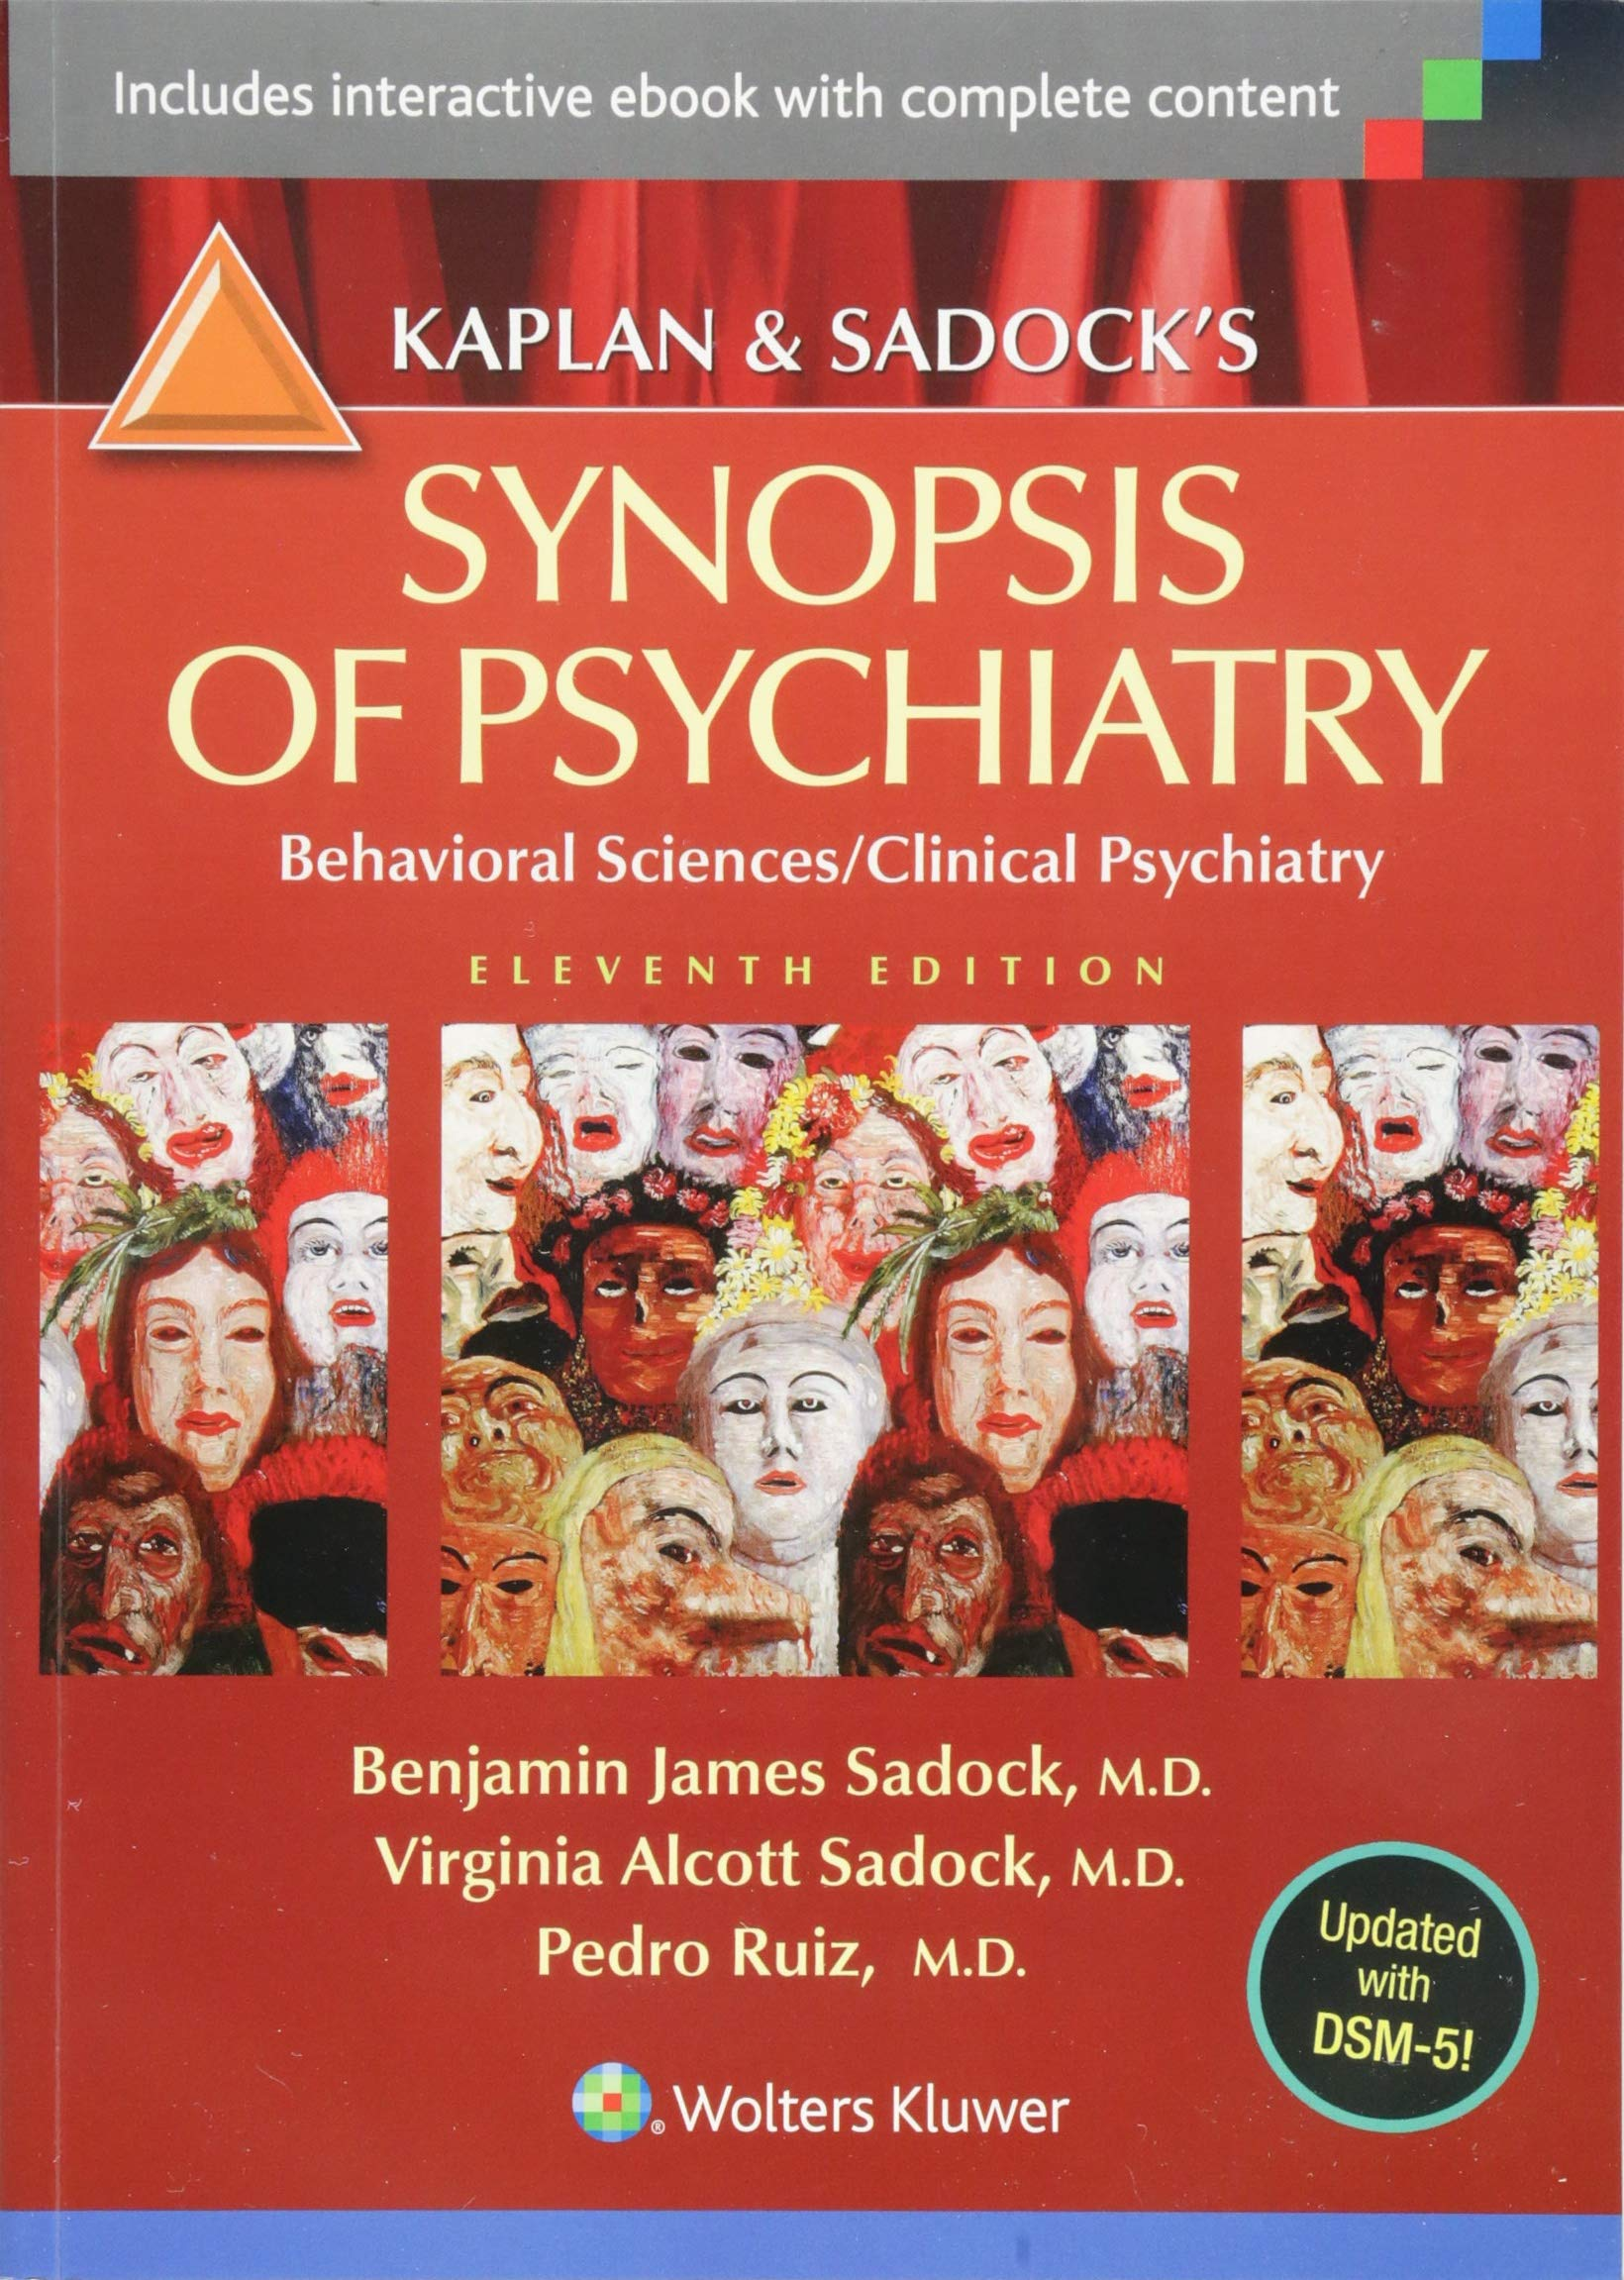 Kaplan and Sadock's Synopsis of Psychiatry: Behavioral Sciences/Clinical Psychiatry by LWW